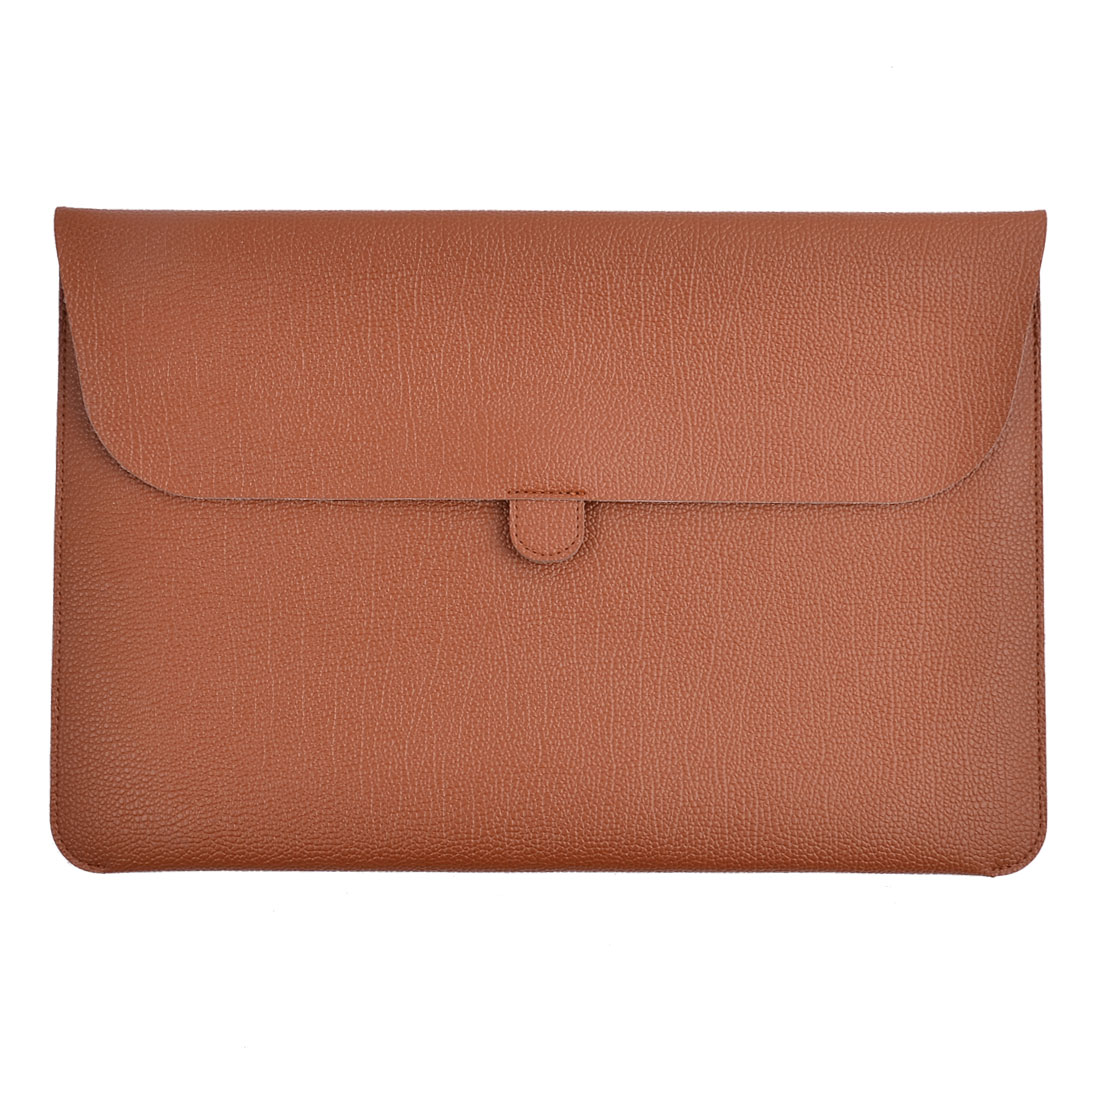 """Carrying Laptop Case Pouch Envelope Shape Tablet Sleeve Bag Brown for Macbook 13.3"""""""